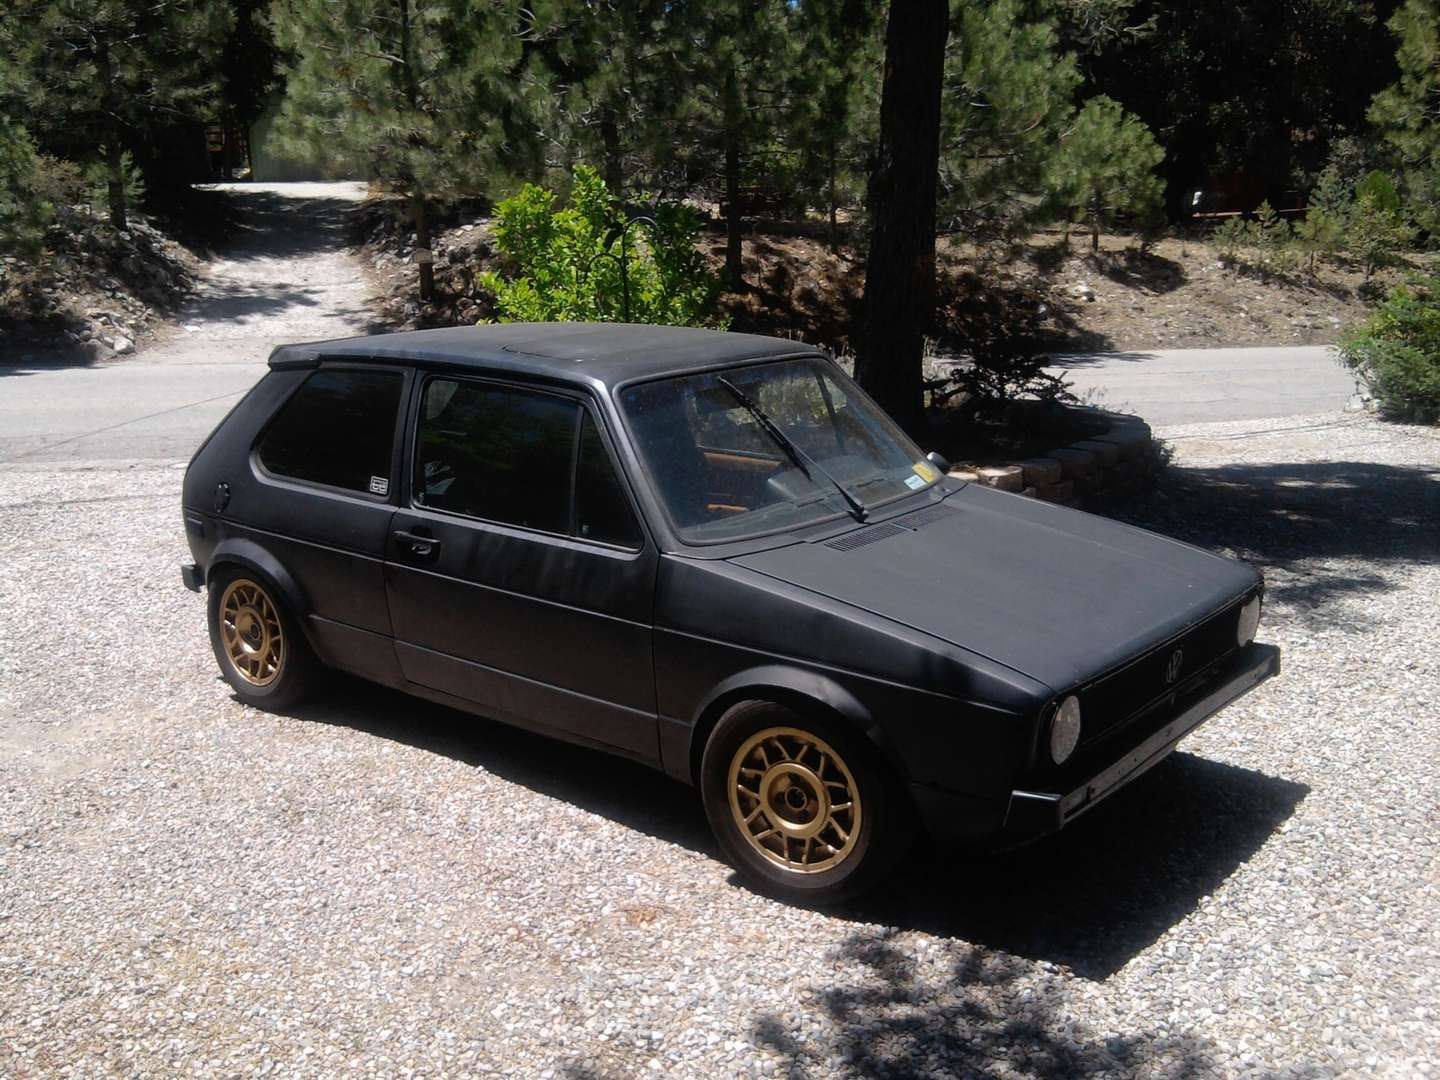 Volkswagen Rabbit #7006069